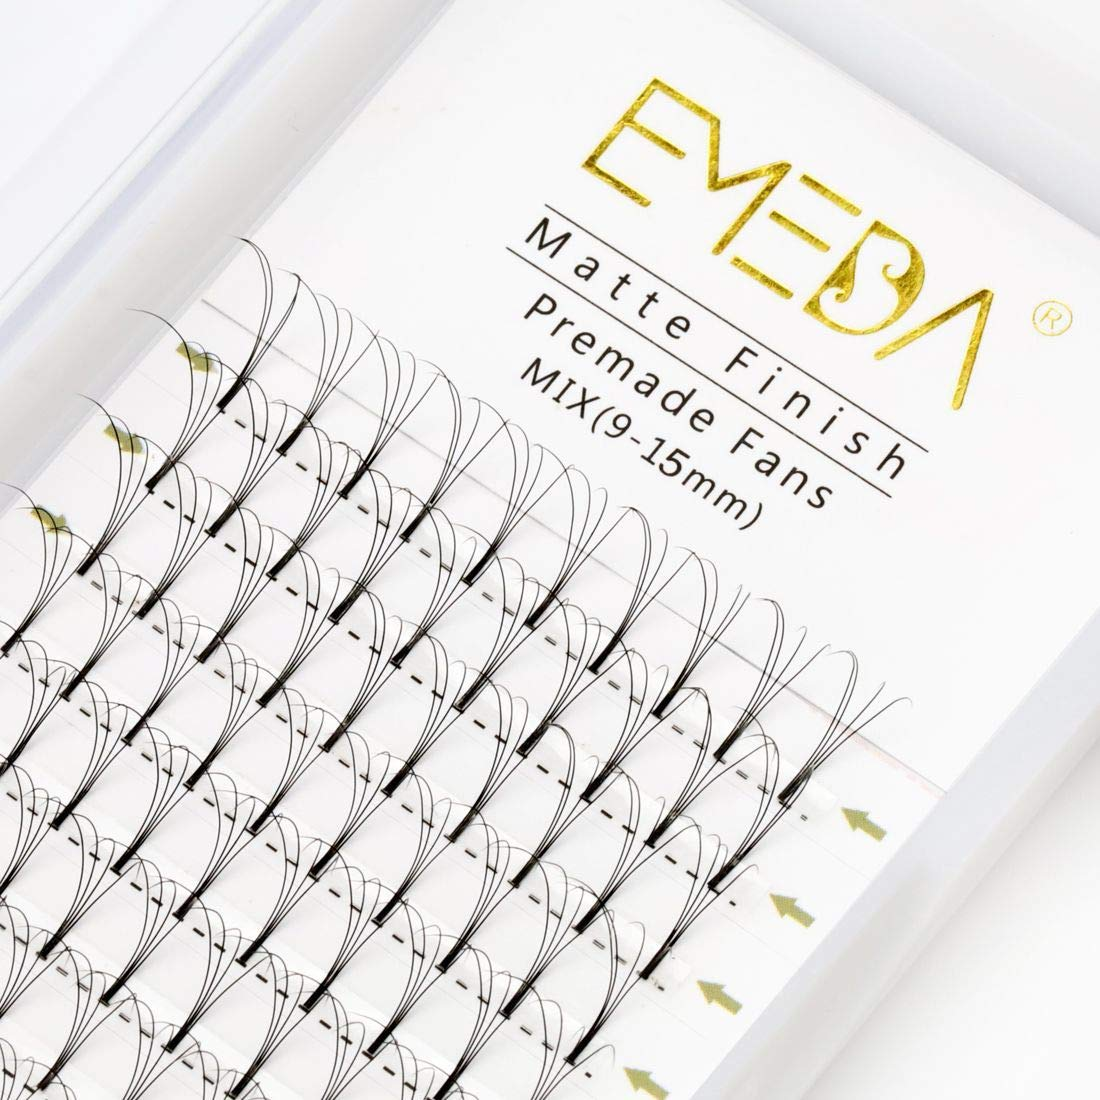 Premade Fans Volume Lash Extensions C D Curl 0.10 Mix Tray 9mm 10mm 11mm 12mm 13mm 14mm 15mm 16mm Mixed Trays .10 4D Pre Fanned Russian Cluster Eyelashes by EMEDA (4D 0.10 C 14mm)